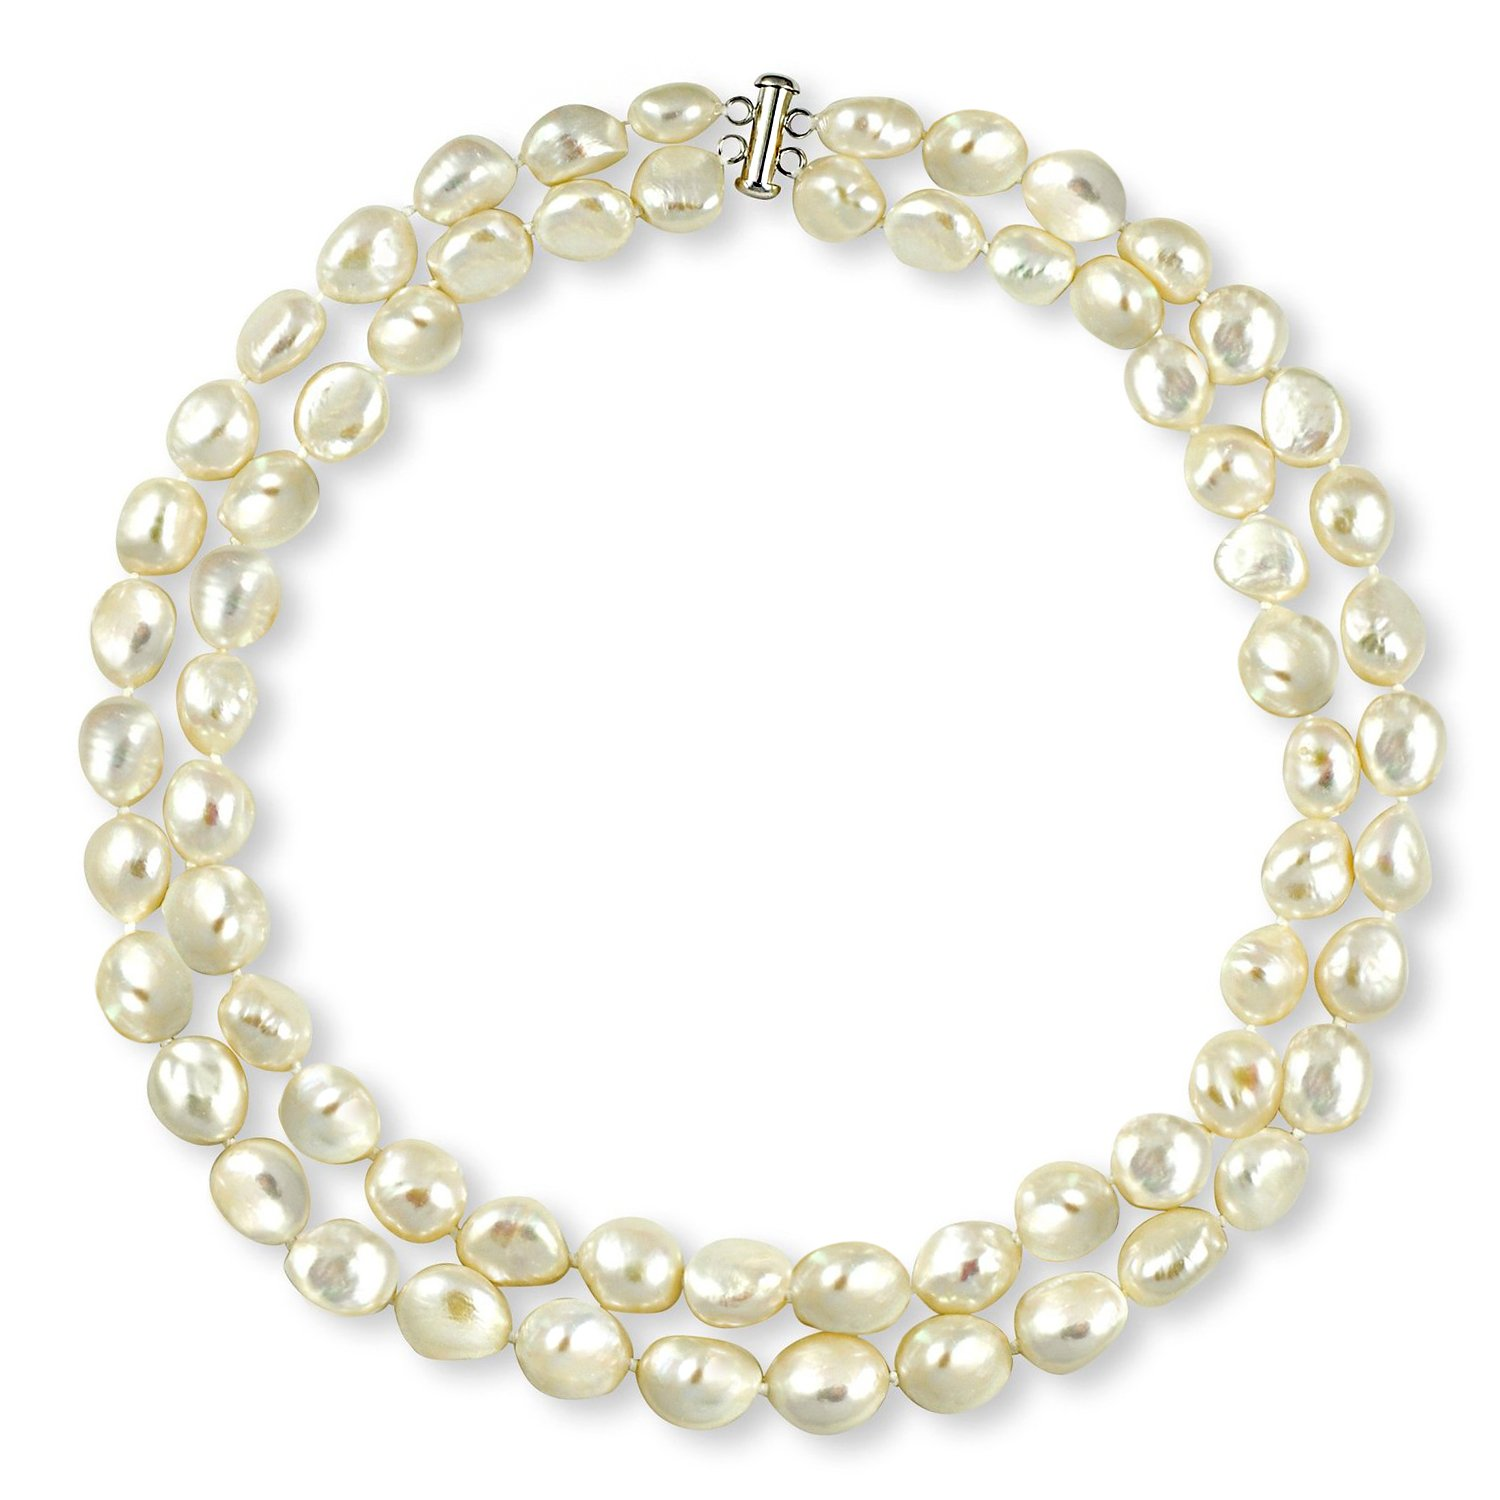 Sterling Silver Cultured Baroque Freshwater White Pearl Necklace Strand Bridal Jewelry 11-11.5mm 17 inch